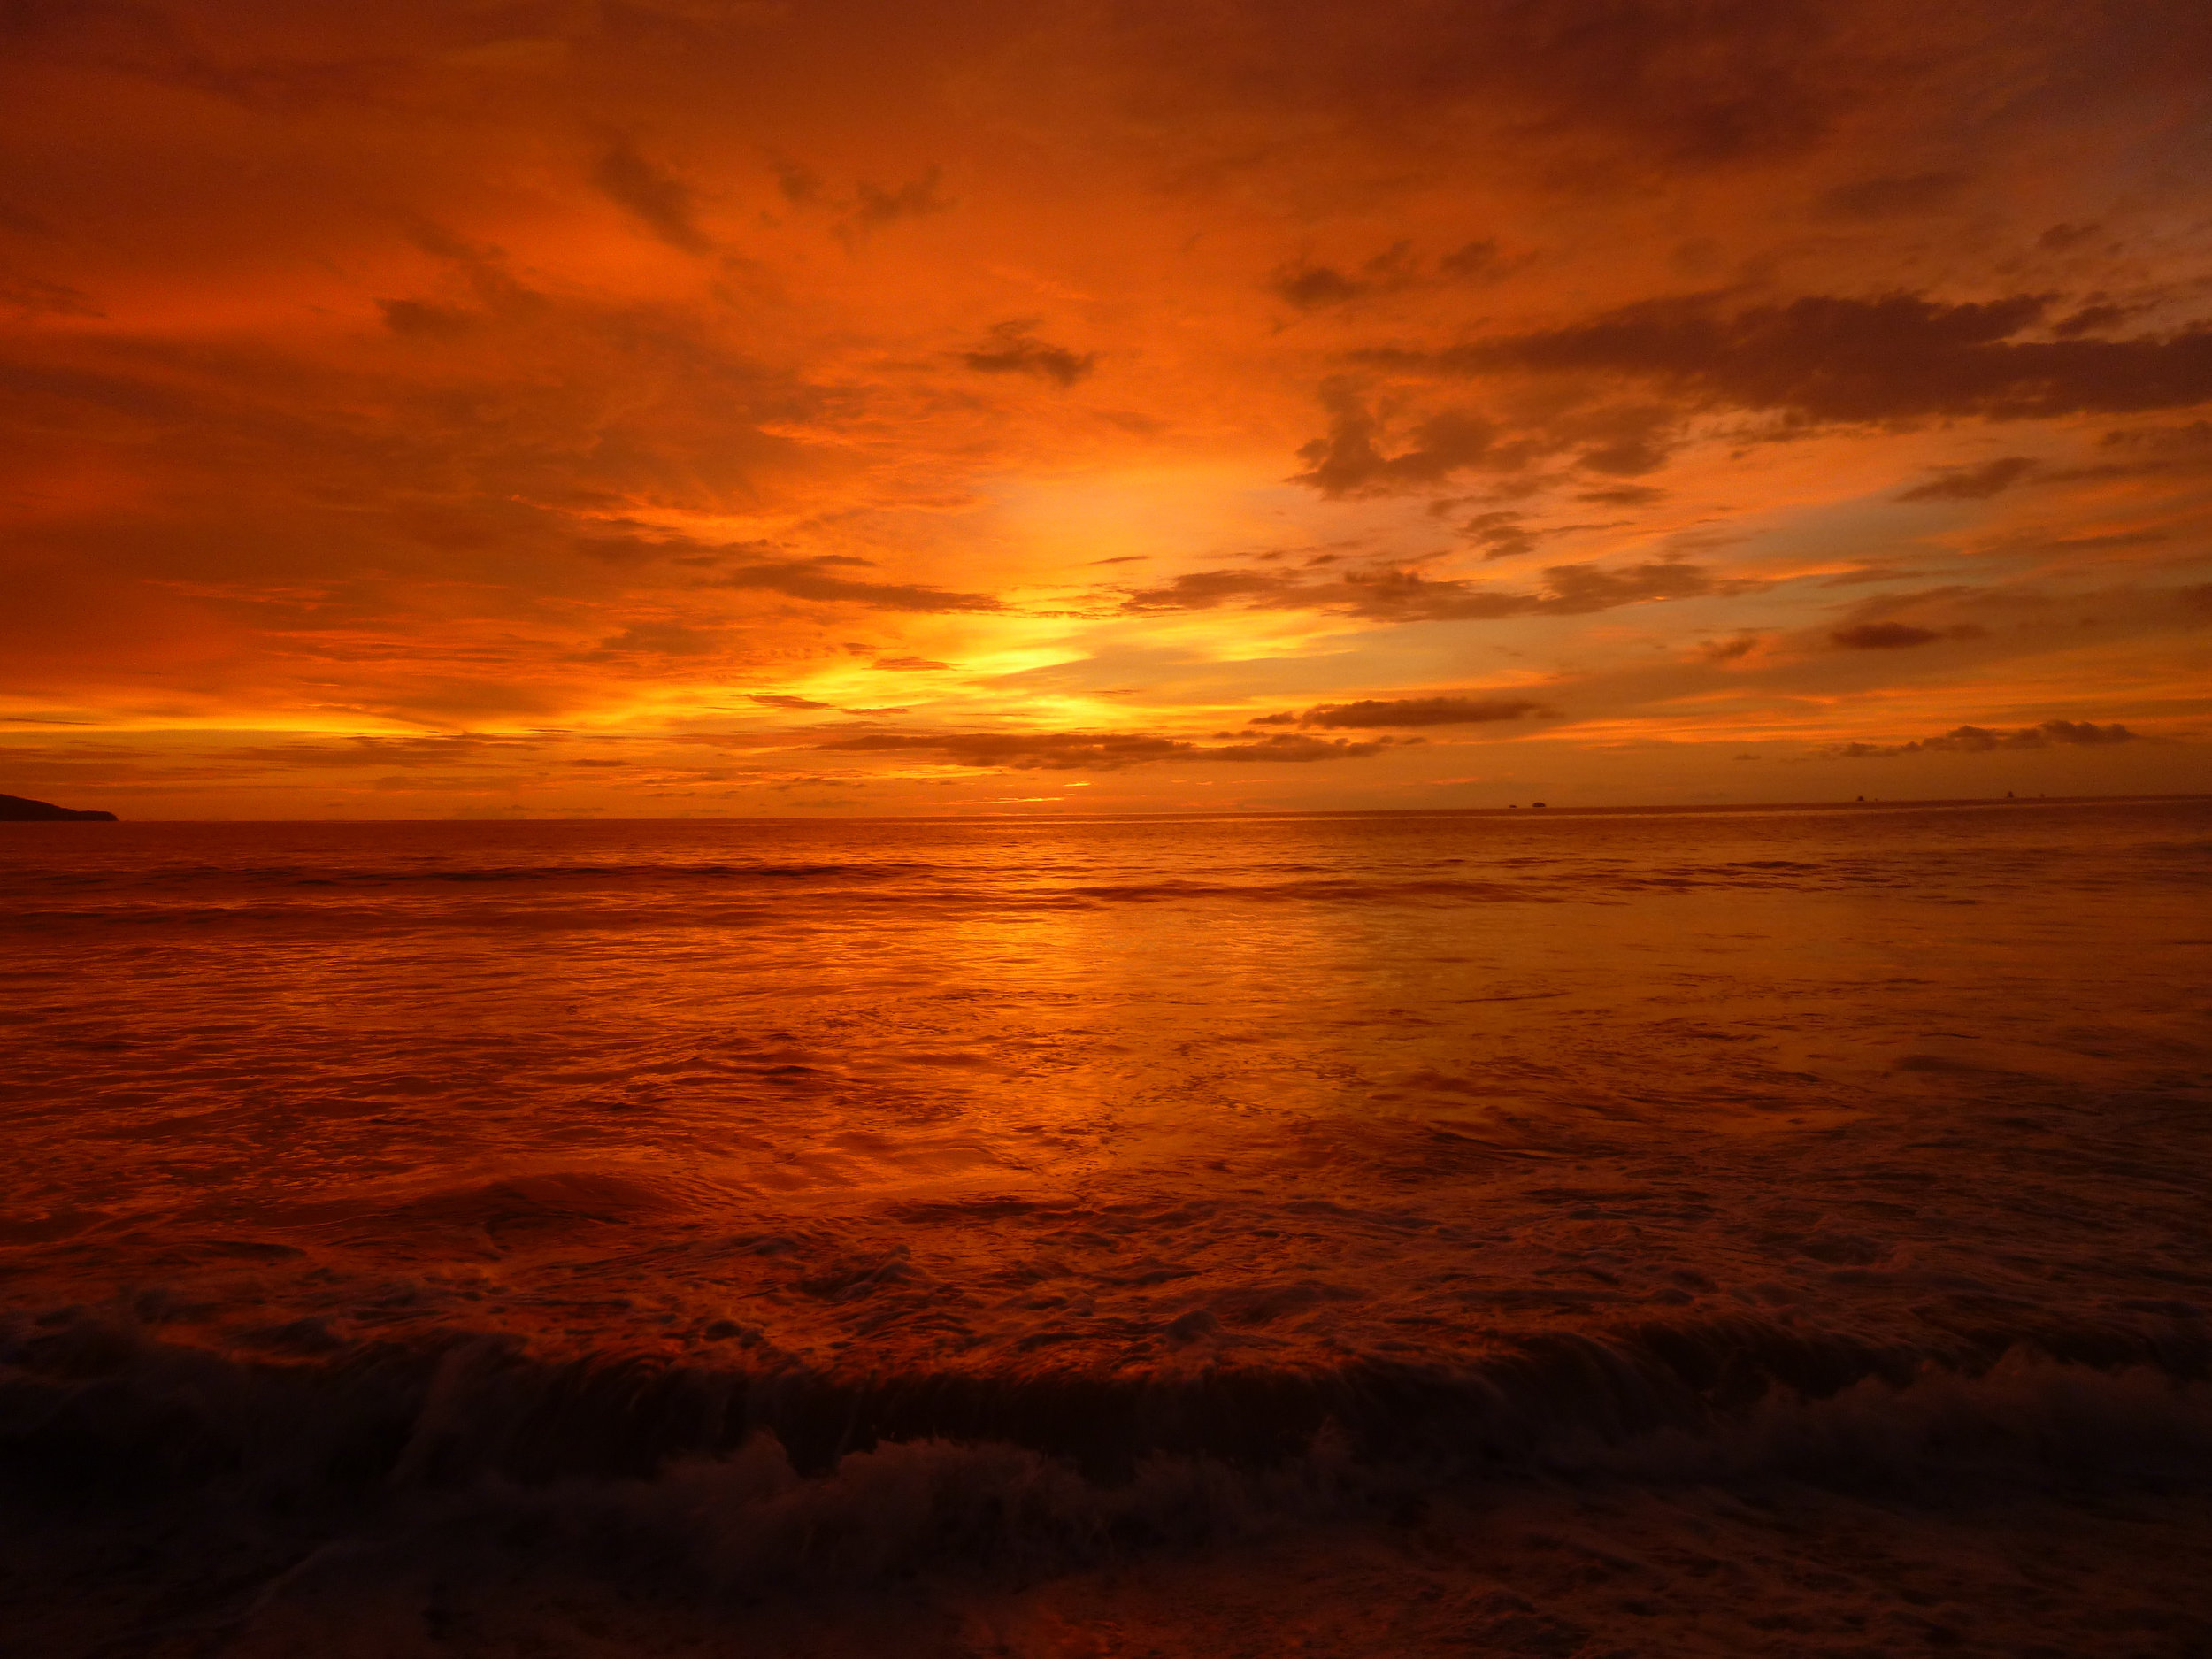 Firey sunset over the sea. No visible crocodiles. Photo by  Cindy del Valle .